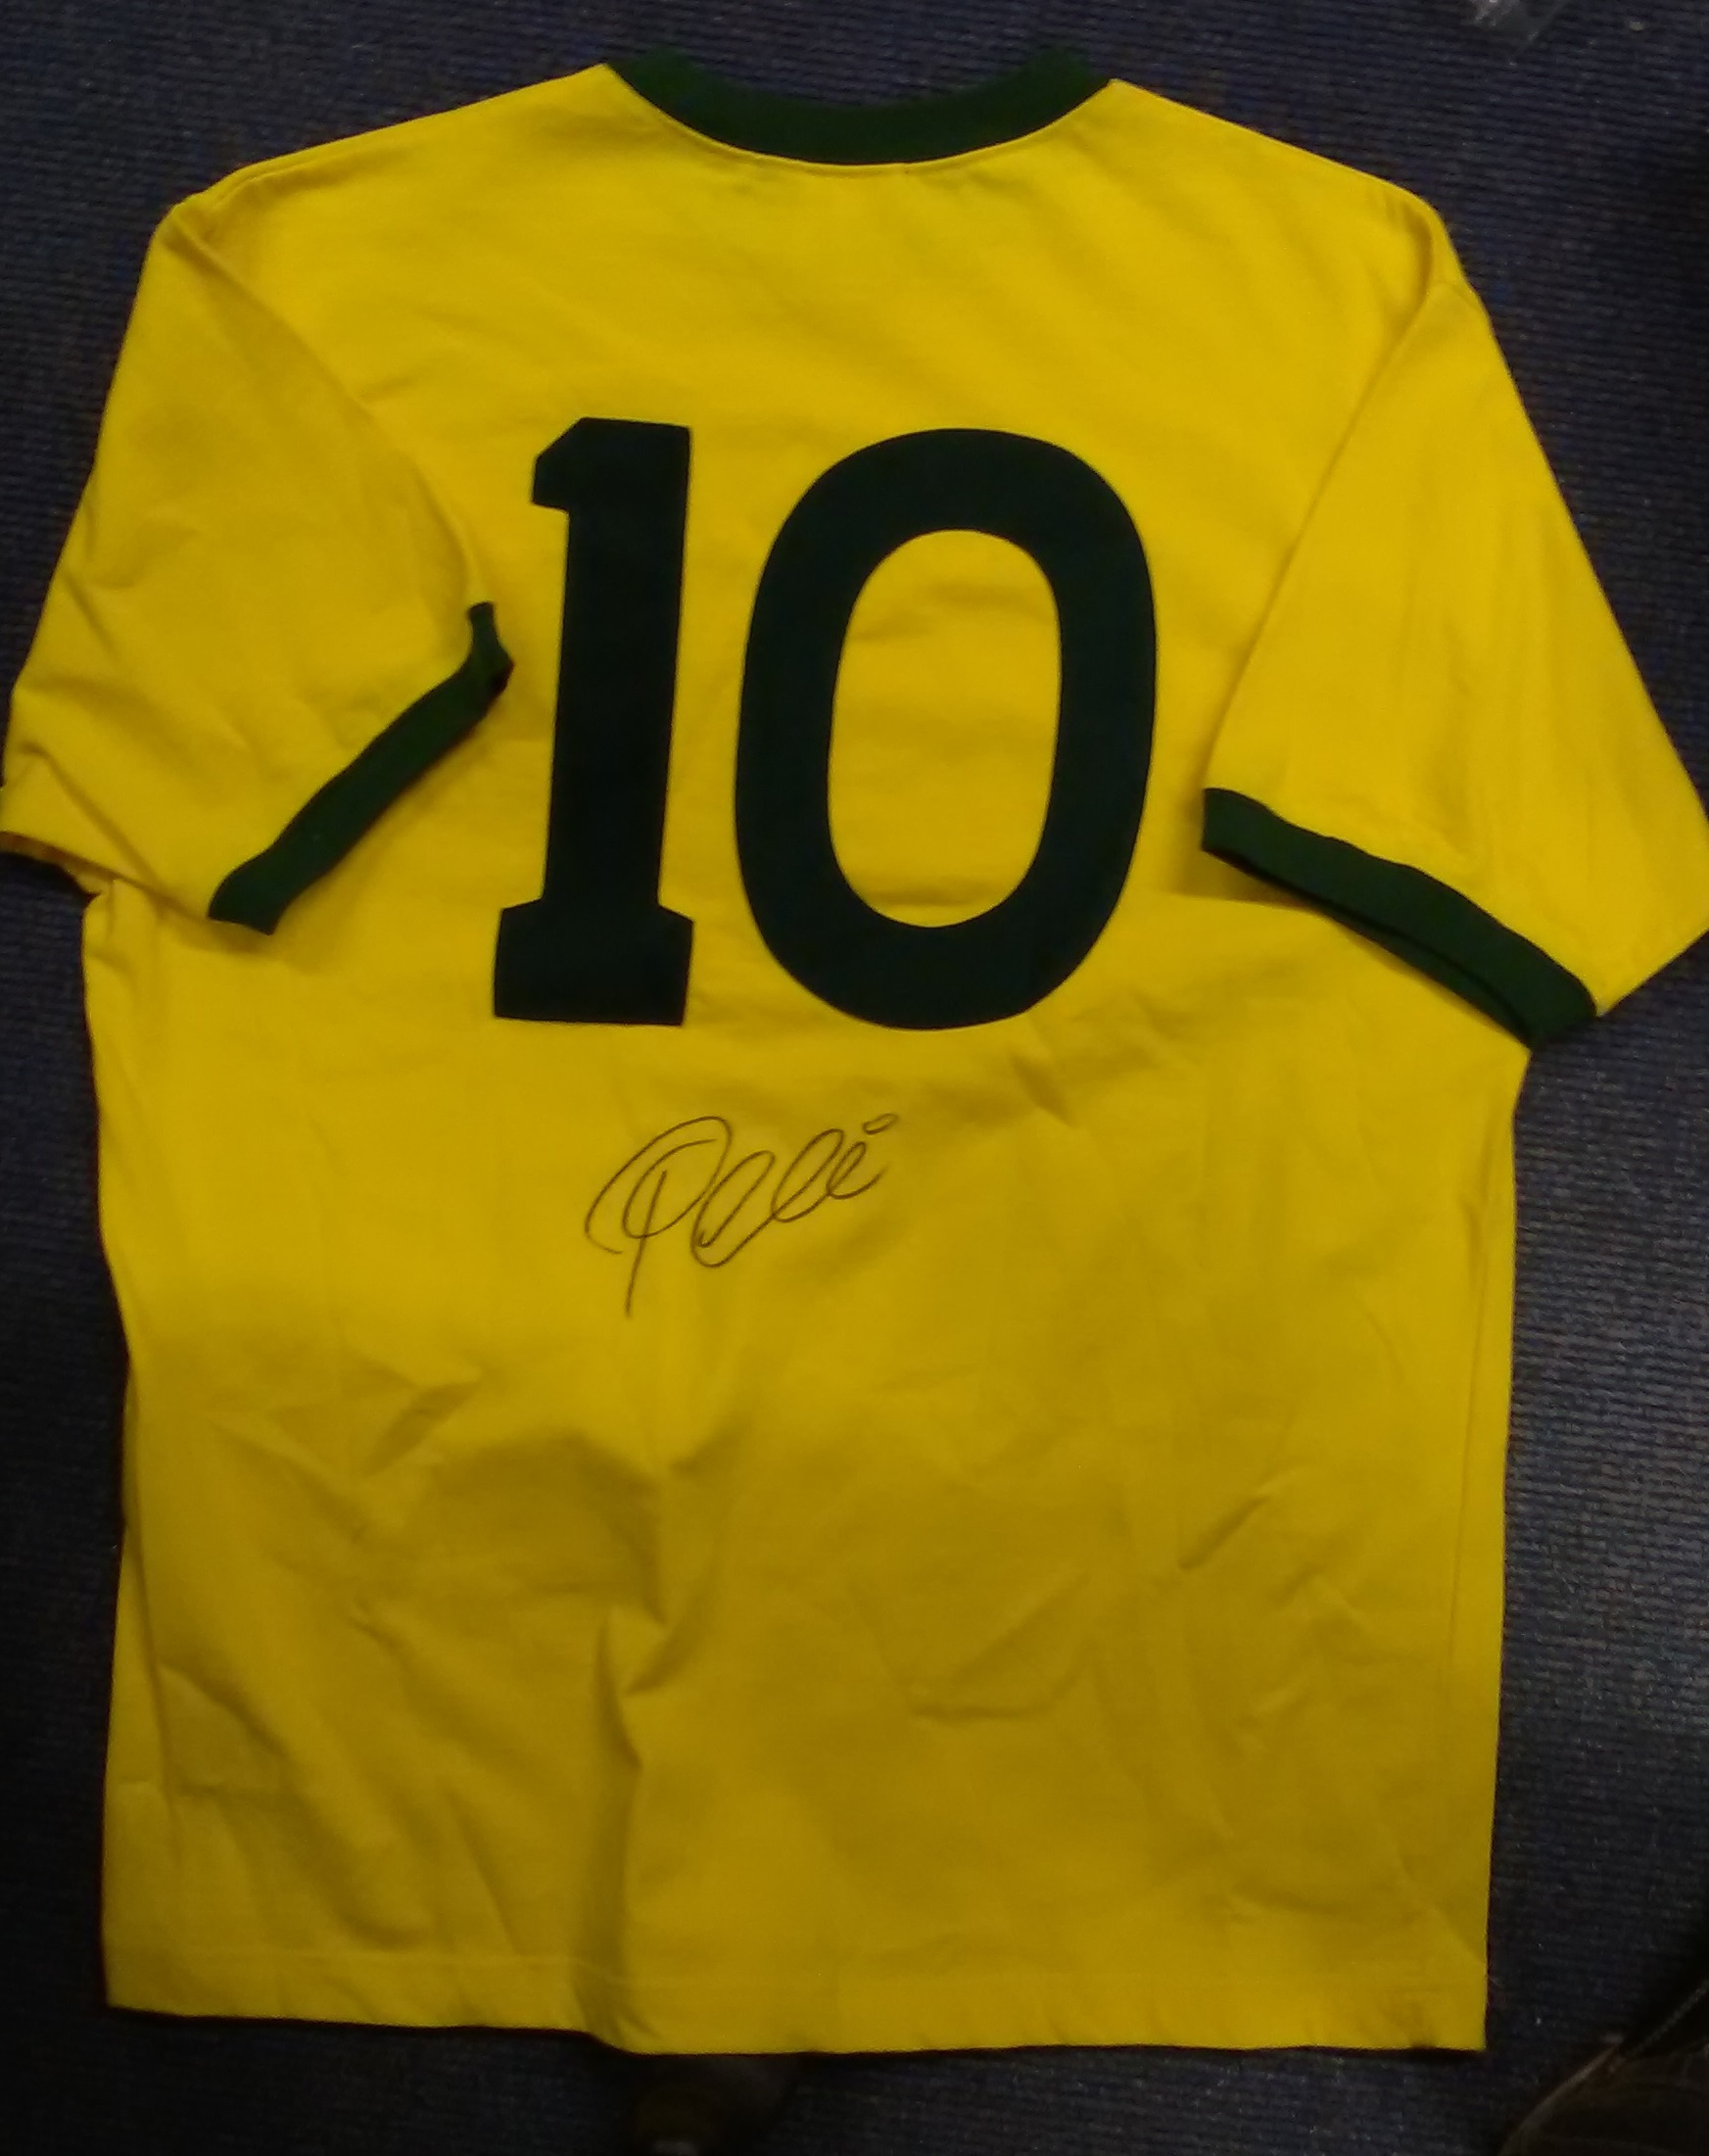 Lot 55 - Pele signed replica yellow Brazil number 10 football shirt. Has A1  sporting 559f44fca